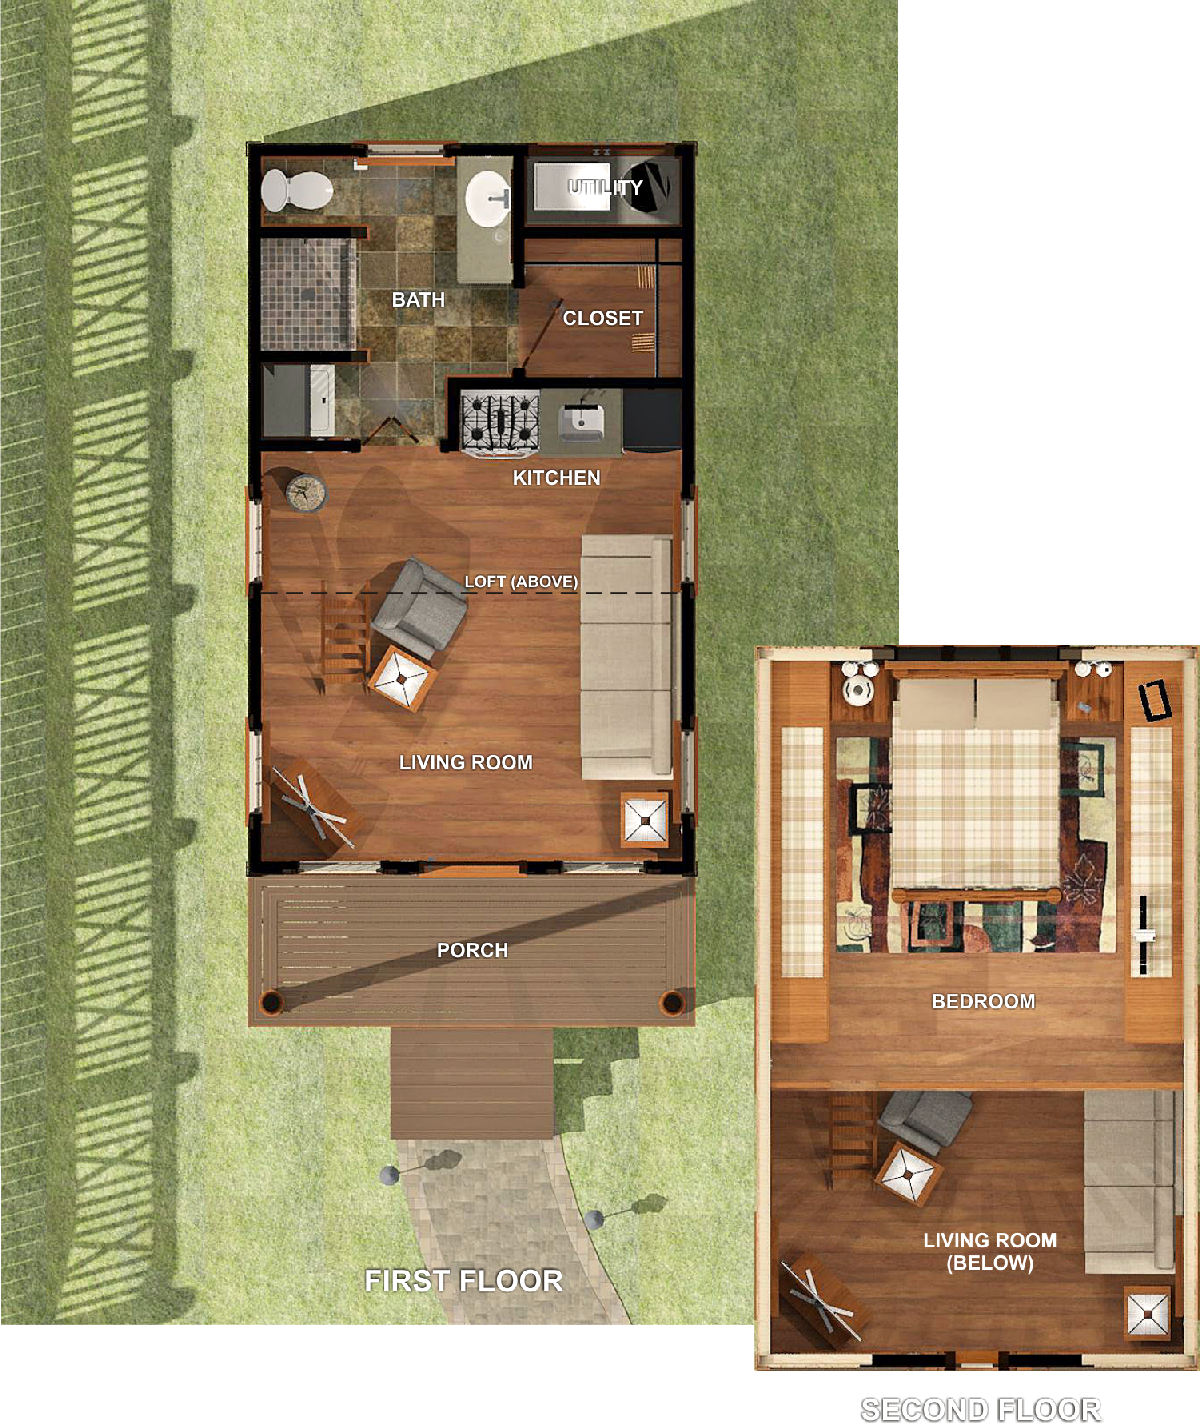 tiny homes small homes little house texas tiny house plans small home - Small Homes Plans